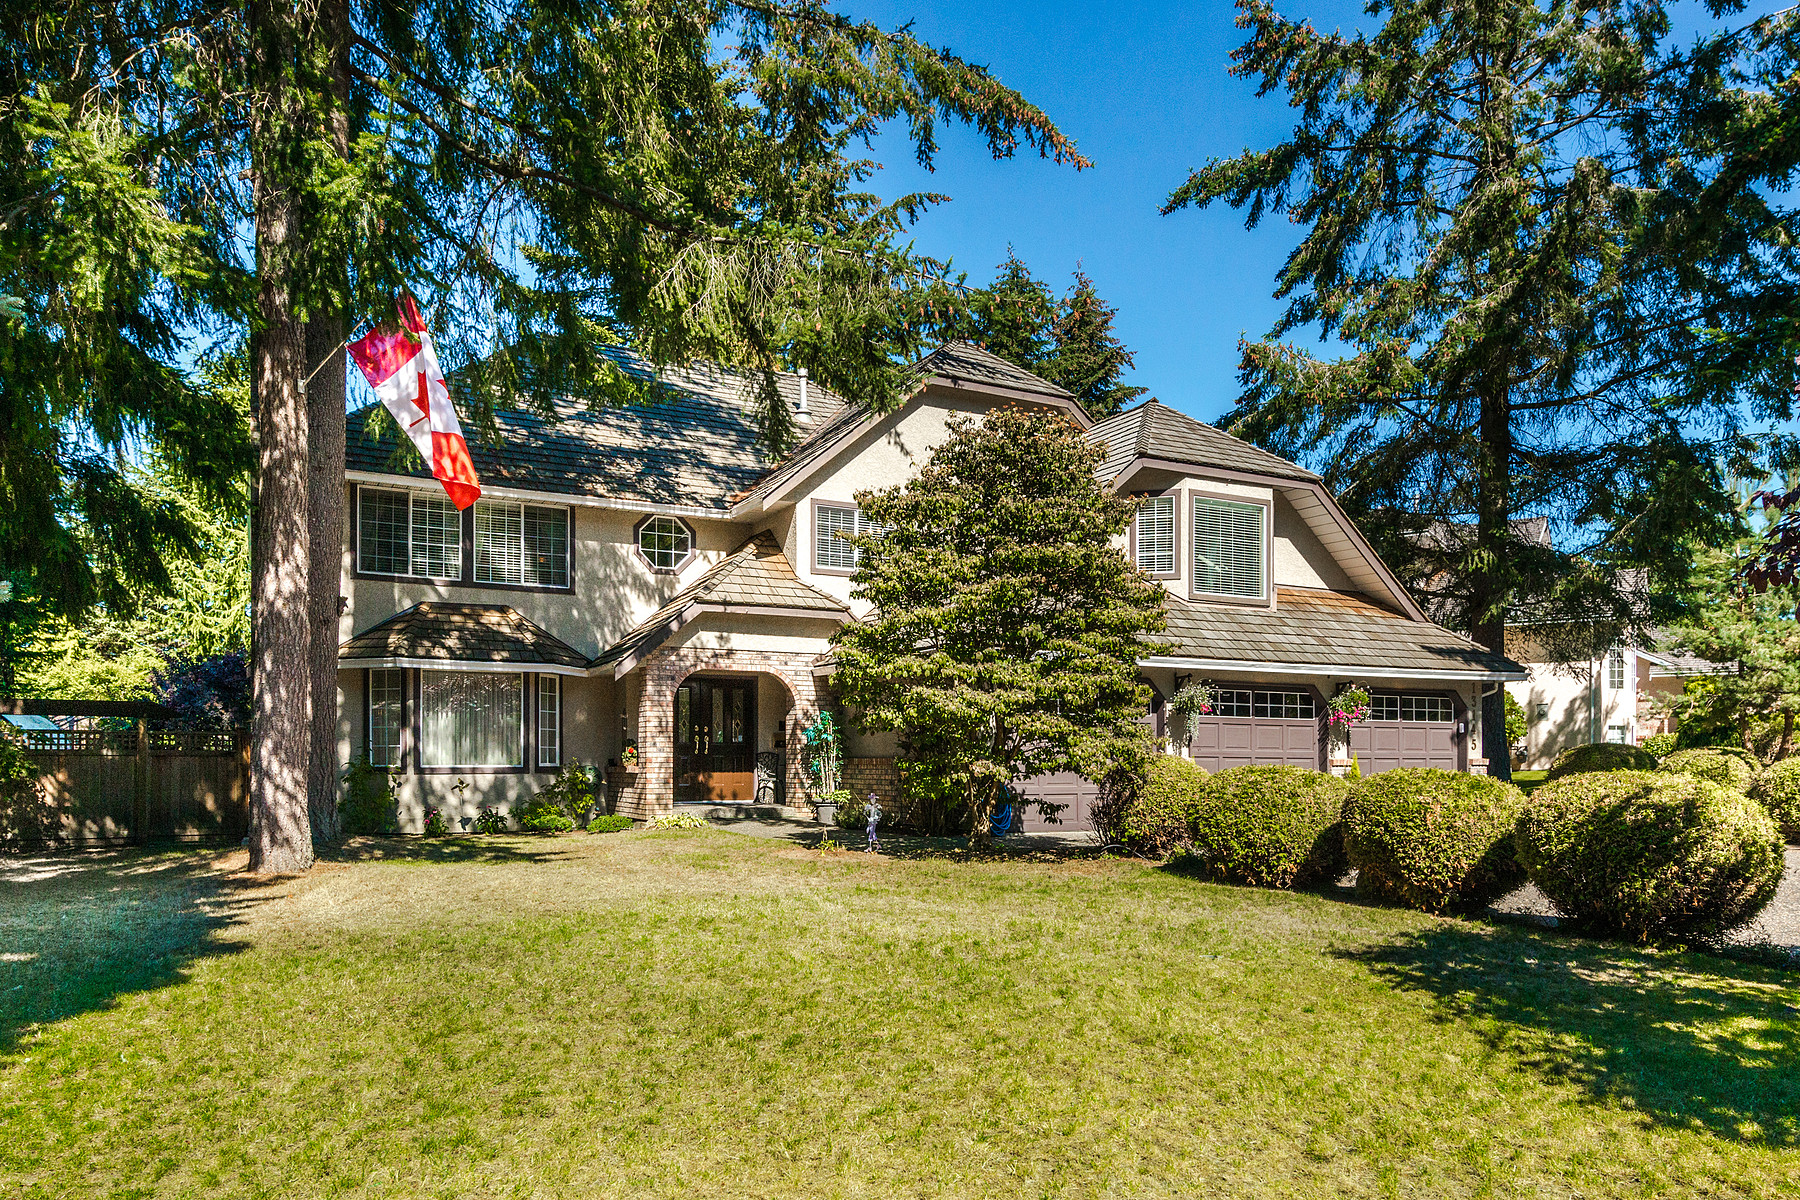 Single Family Homes for Sale at Elgin Chantrell 13145 22A Avenue Surrey, British Columbia V4A 8Y5 Canada